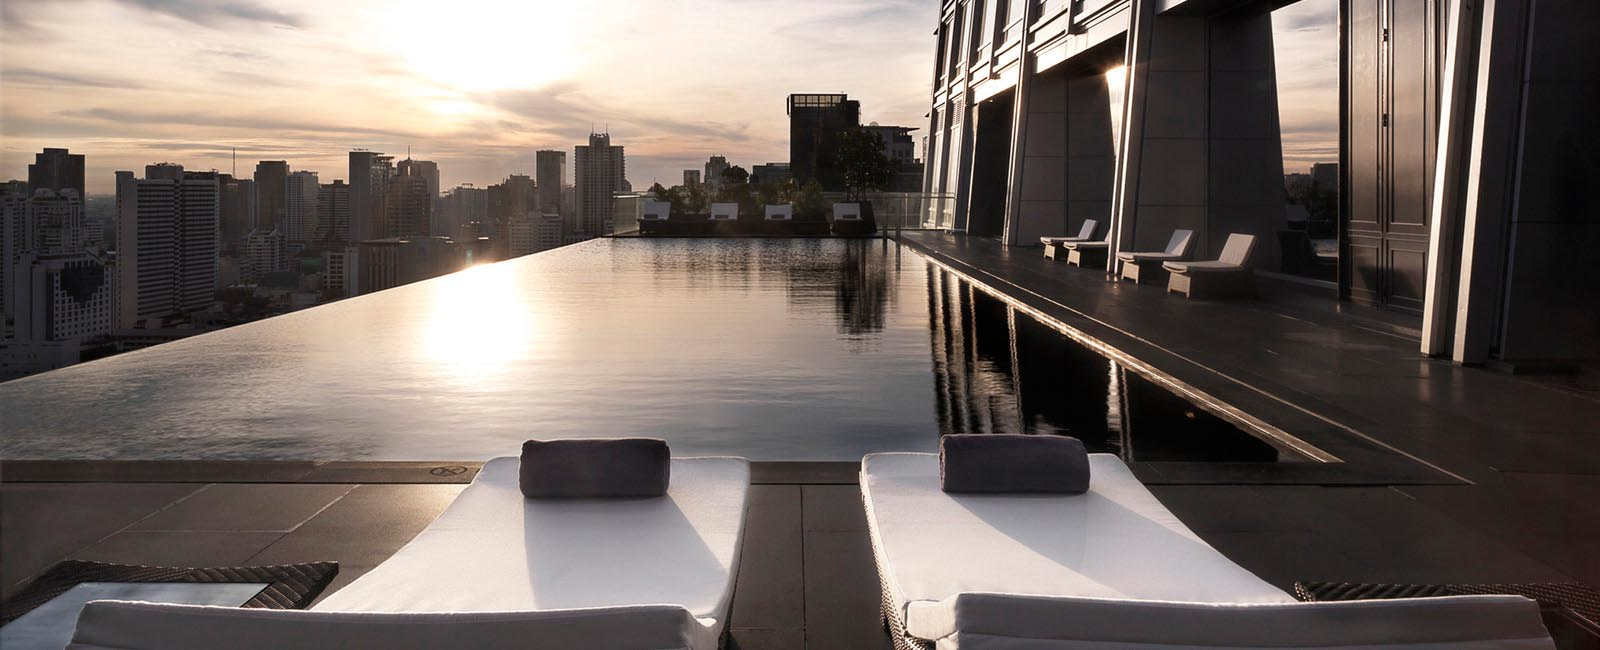 The infinity pool of the Okura Prestige Bangkok, located on the 25th floor, offers spectacular panoramic city views.